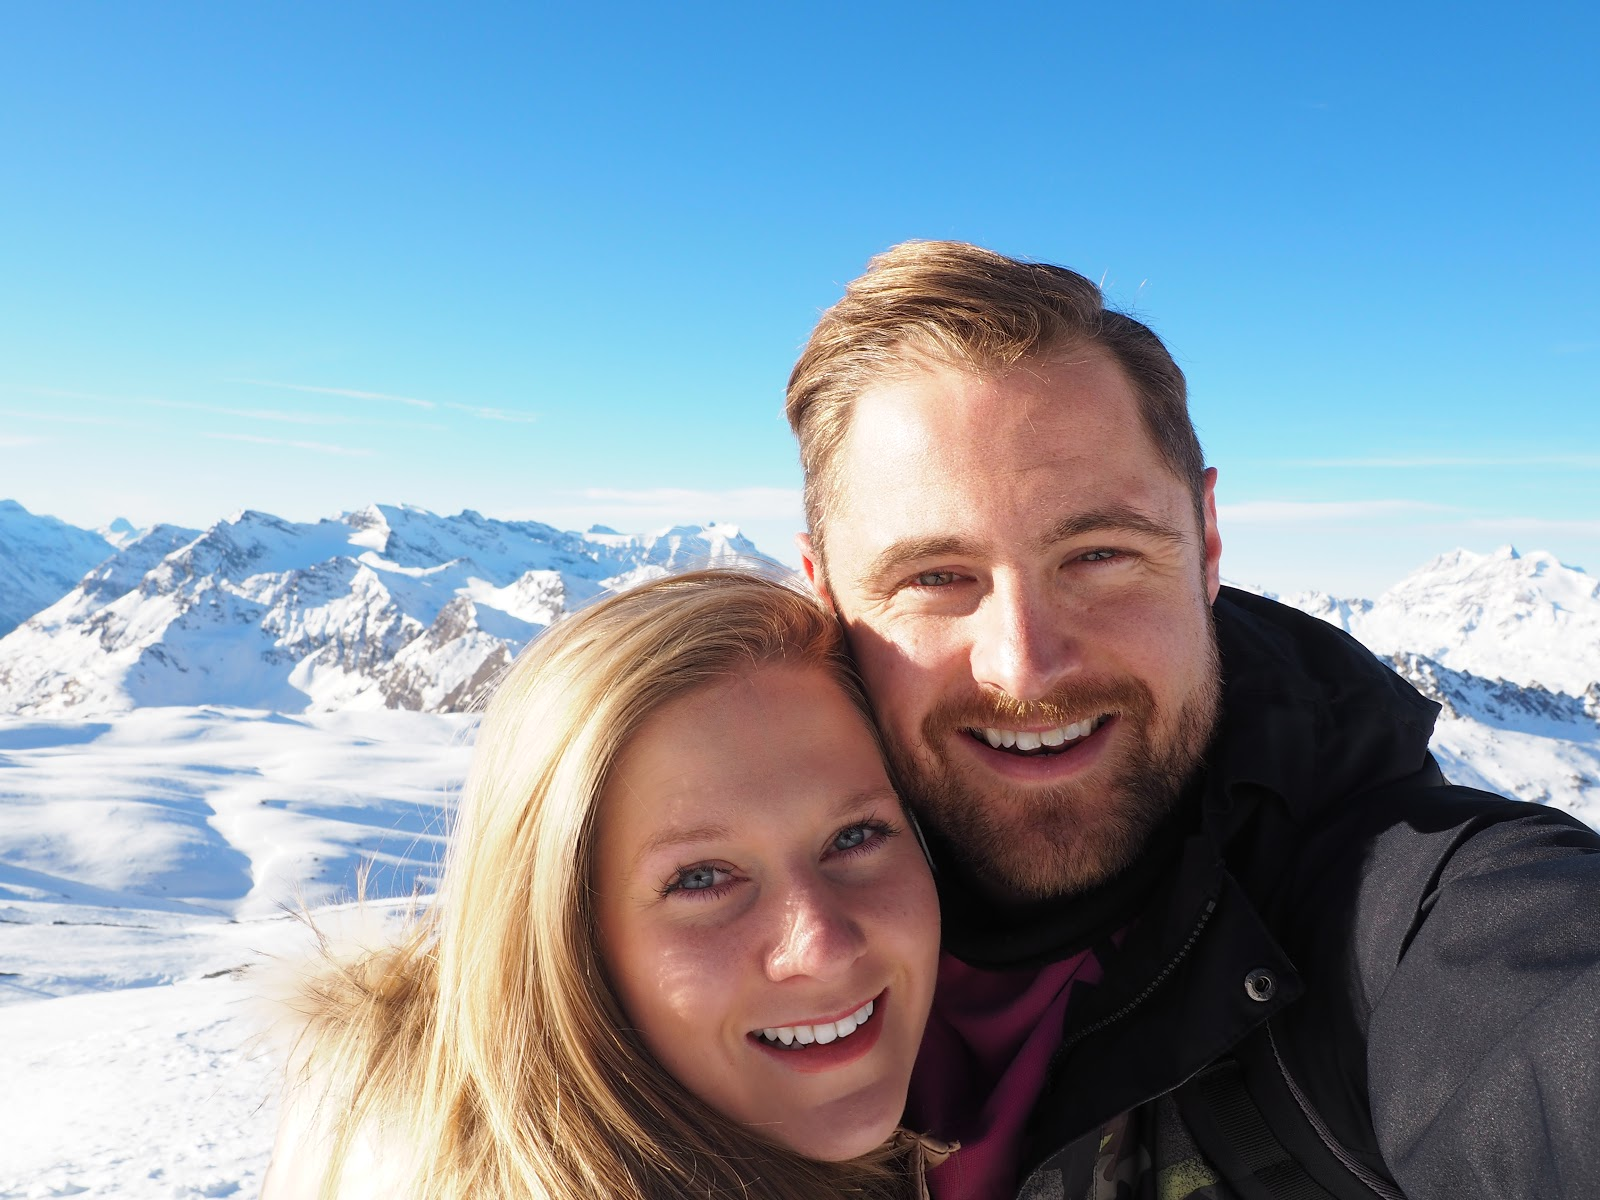 couple standing on top of a snowy mountain in Val d'isere, France